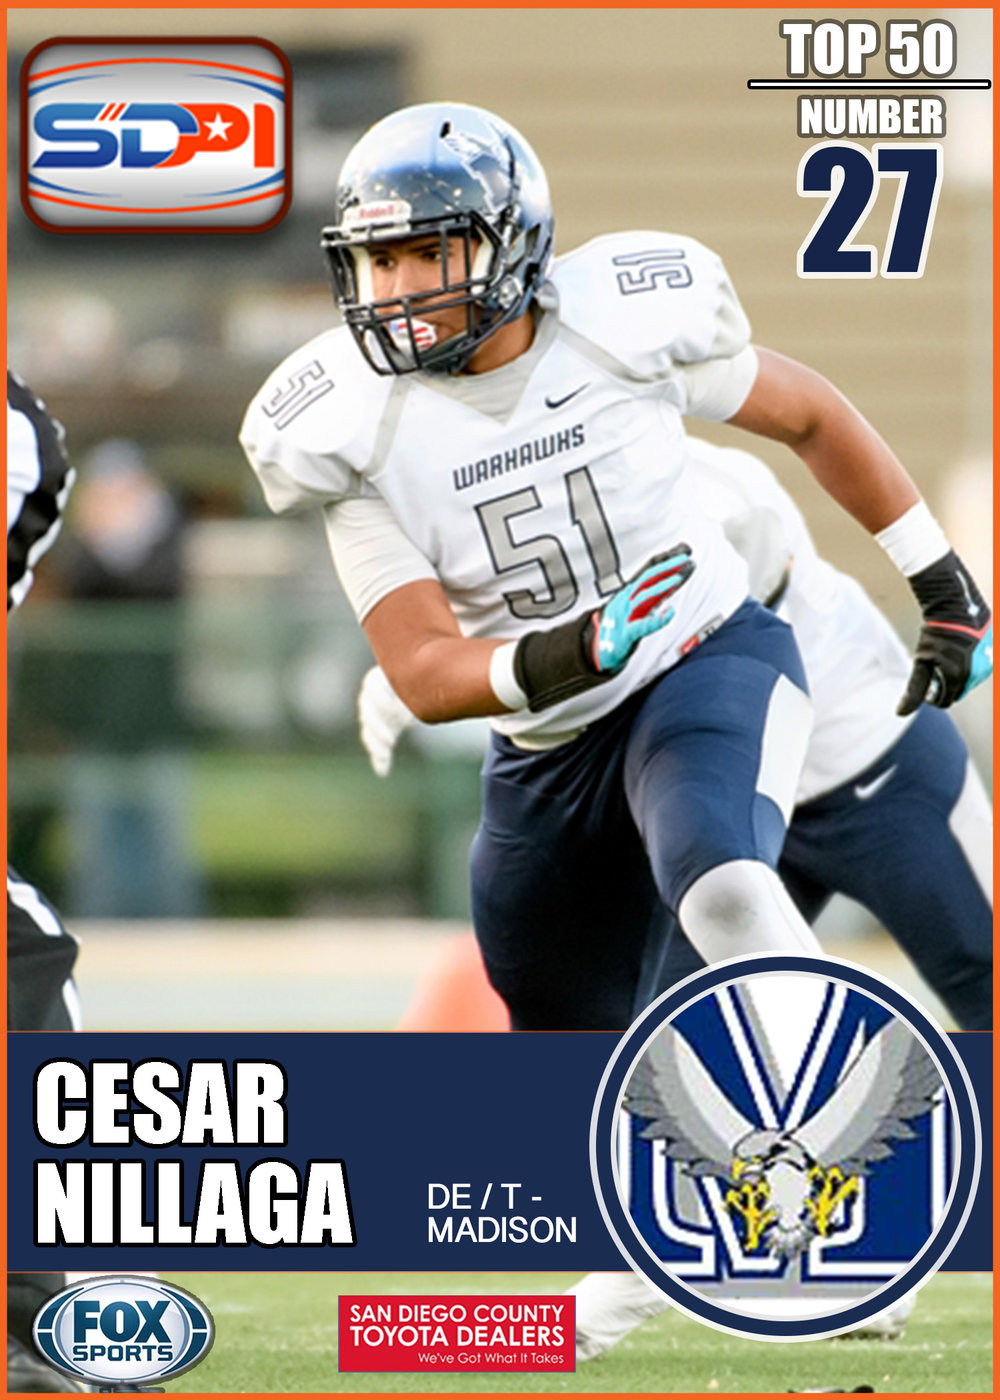 - Cesar was a key player on a Warhawk defense that pestered California offenses on its way to a state title last season. He hustled for 24 QB hurries, 14.5 sacks, one forced fumble, and even made a case to join the